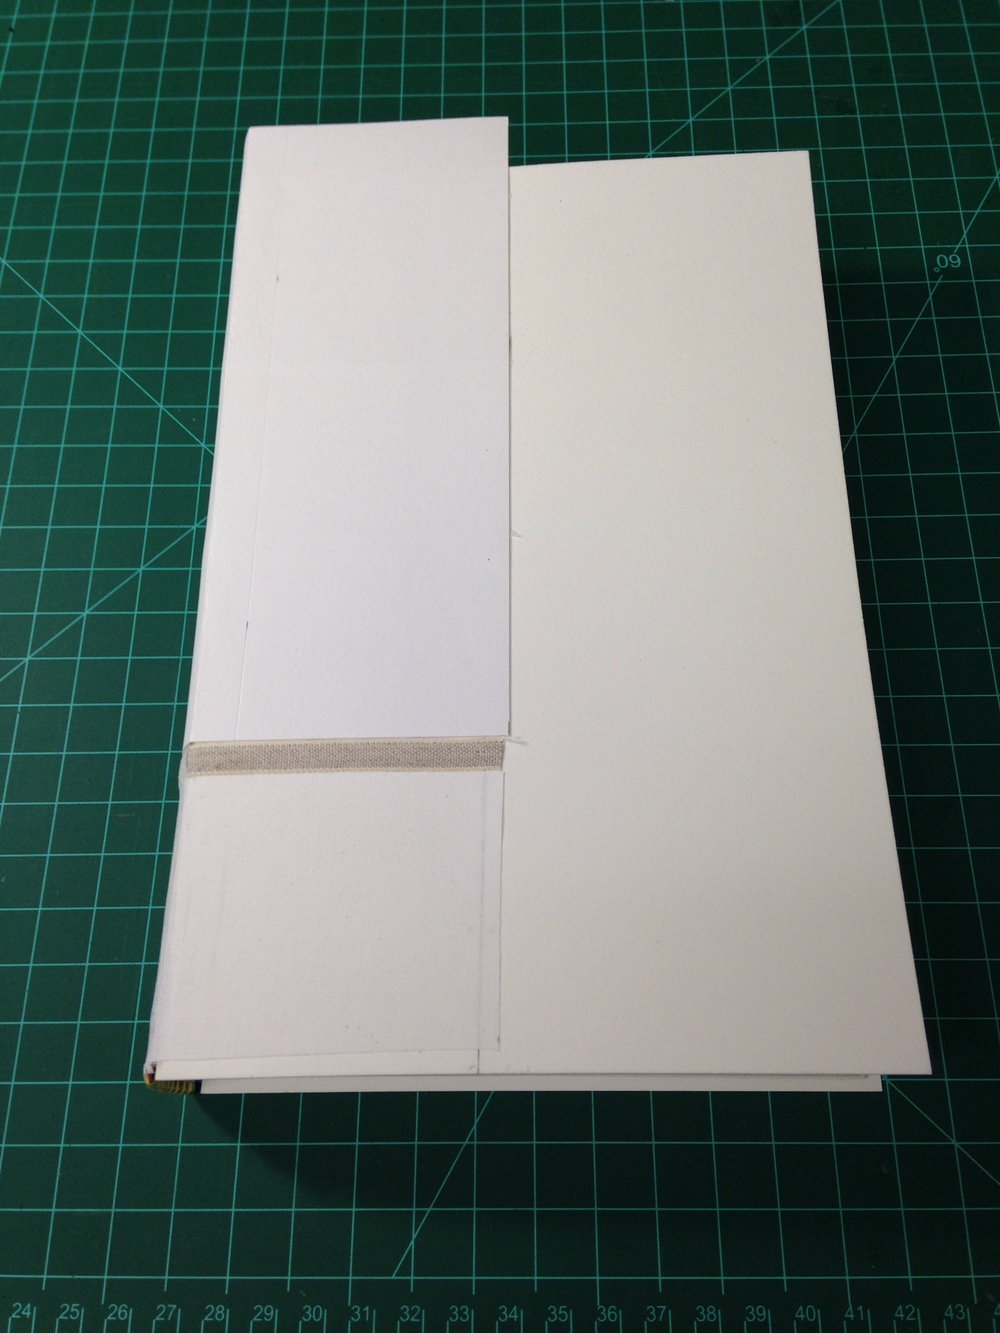 The spine stiffener extends beyond the square of the book at the head but will be trimmed later after forming the spring. I decided to turn my book into a cutaway teaching model, exposing about 1/3 of the book at the tail end.